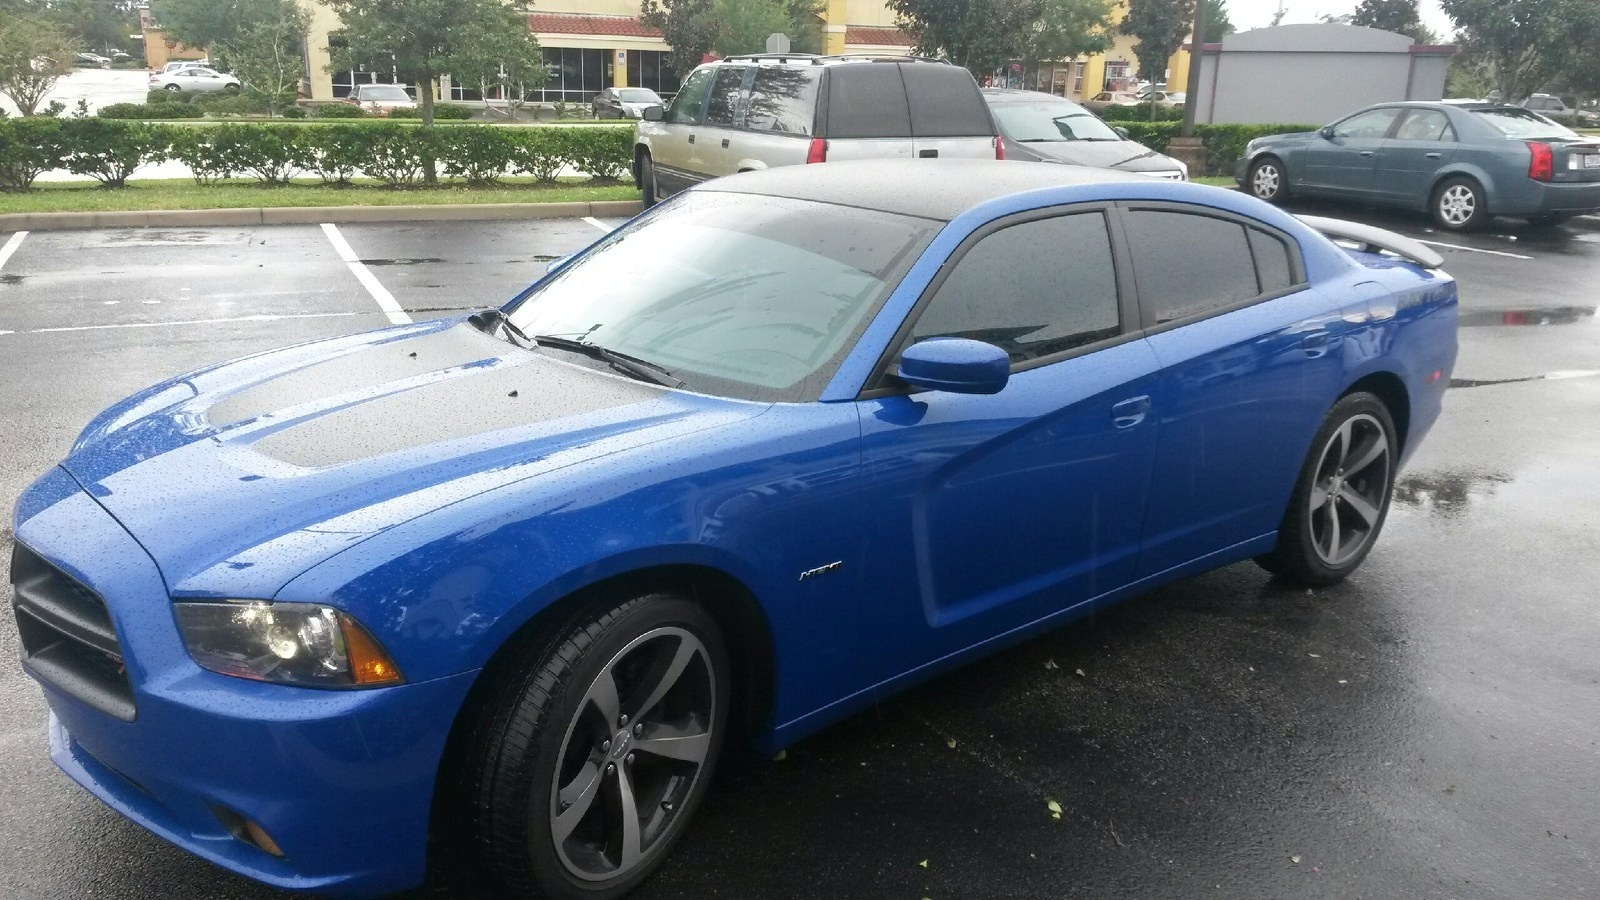 All Types 2006 charger daytona : Dodge Charger Questions - Max speed of 2006 Charger Daytona ...